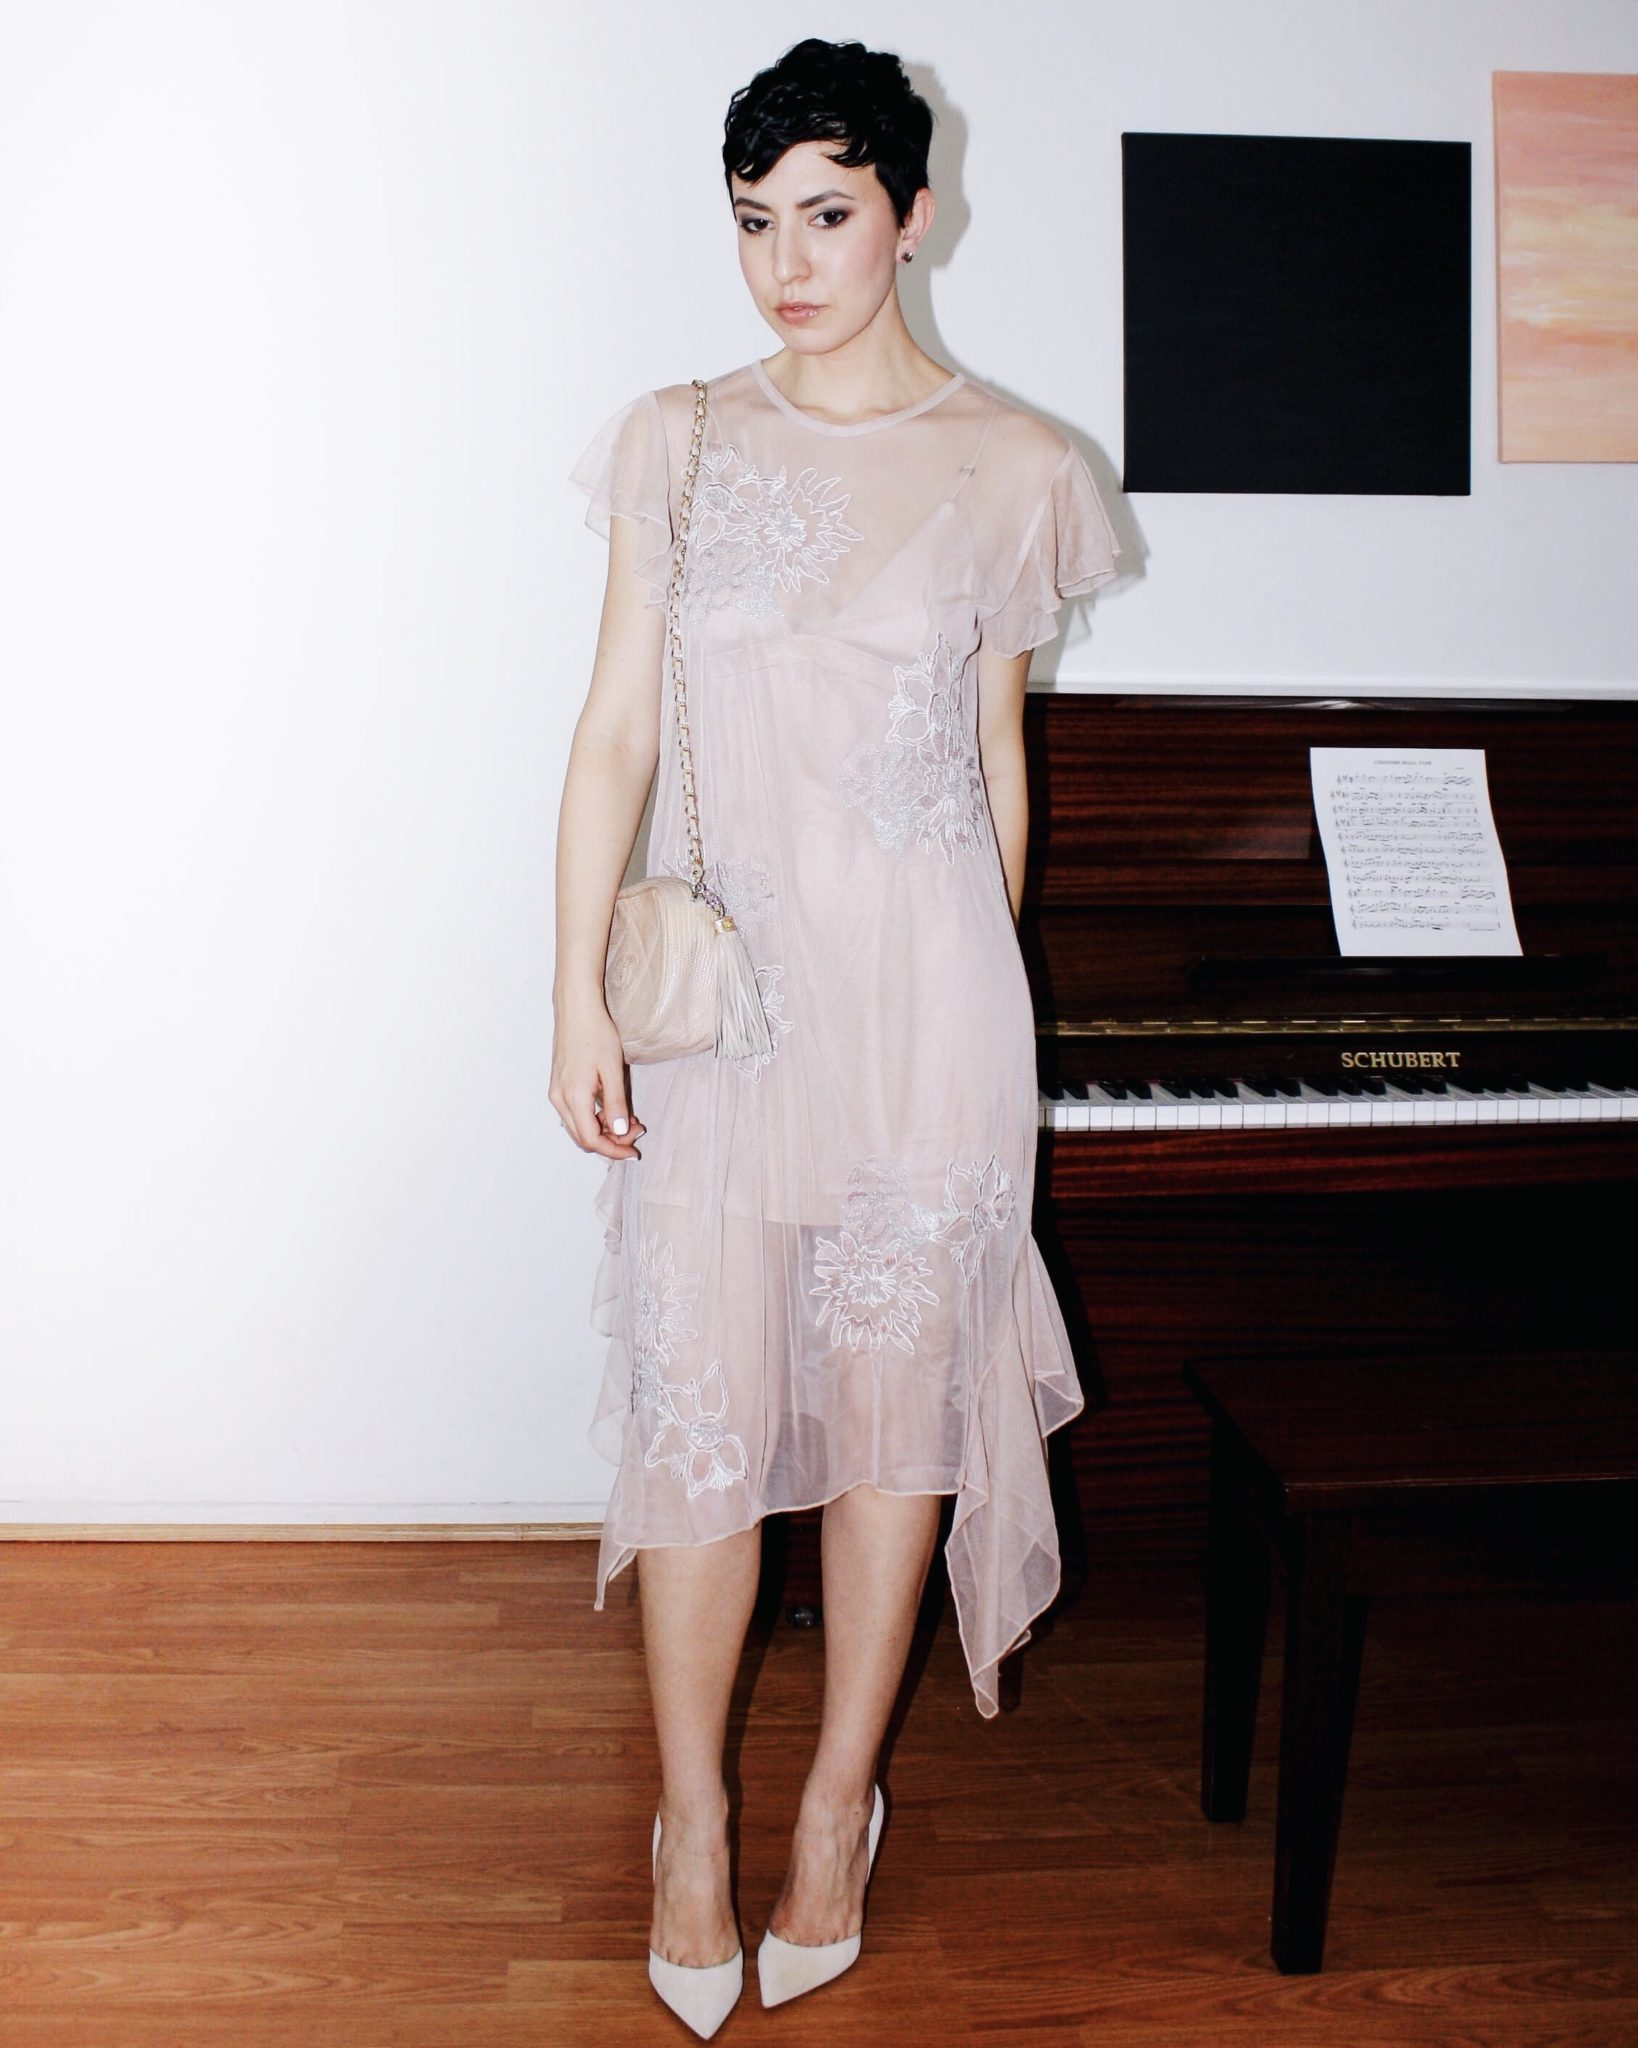 zara dress tulle naked dress embroidery chanel bag suede shoes giambattista valli